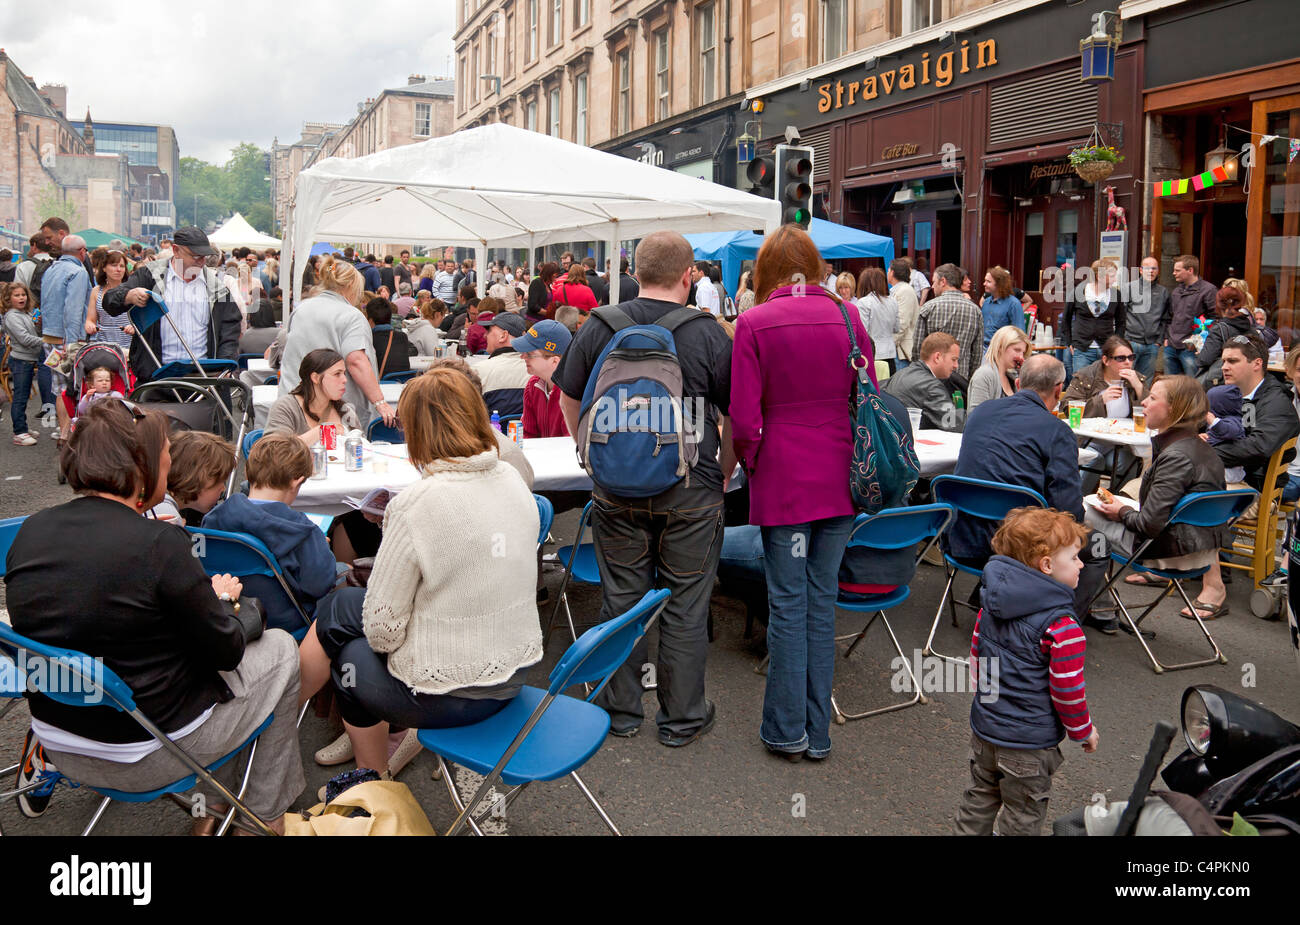 People eating at street tables, Gibson Street Gala, part of Glasgow's  West End Festival. Stravaigan restaurant - Stock Image